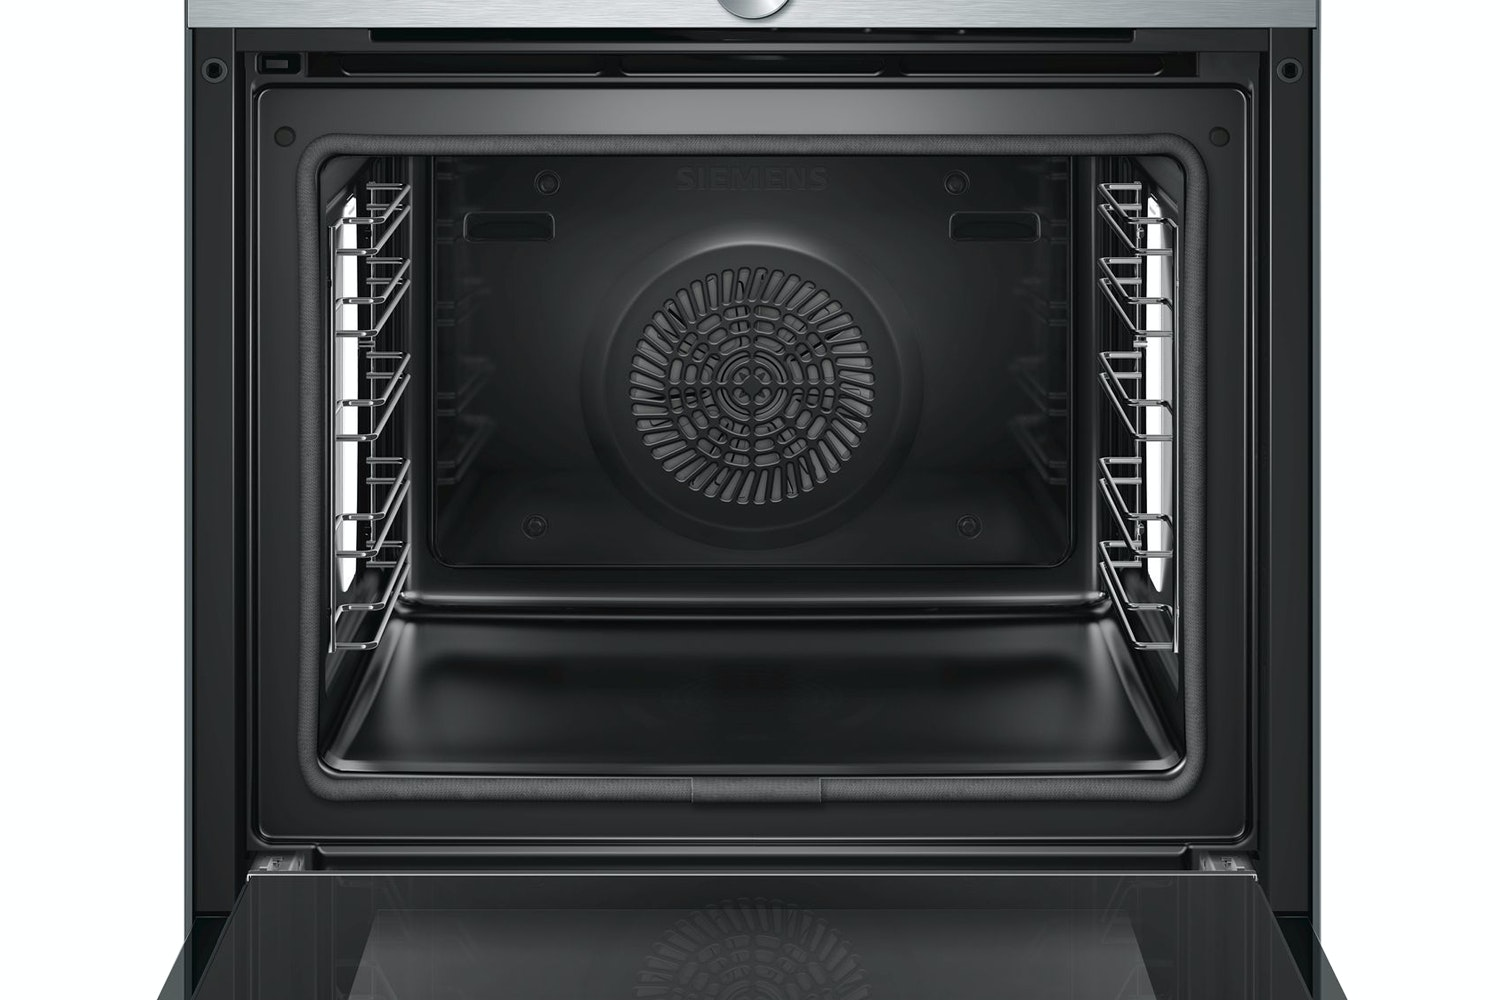 Siemens Built-in Electric Single Oven | HB678GBS6B